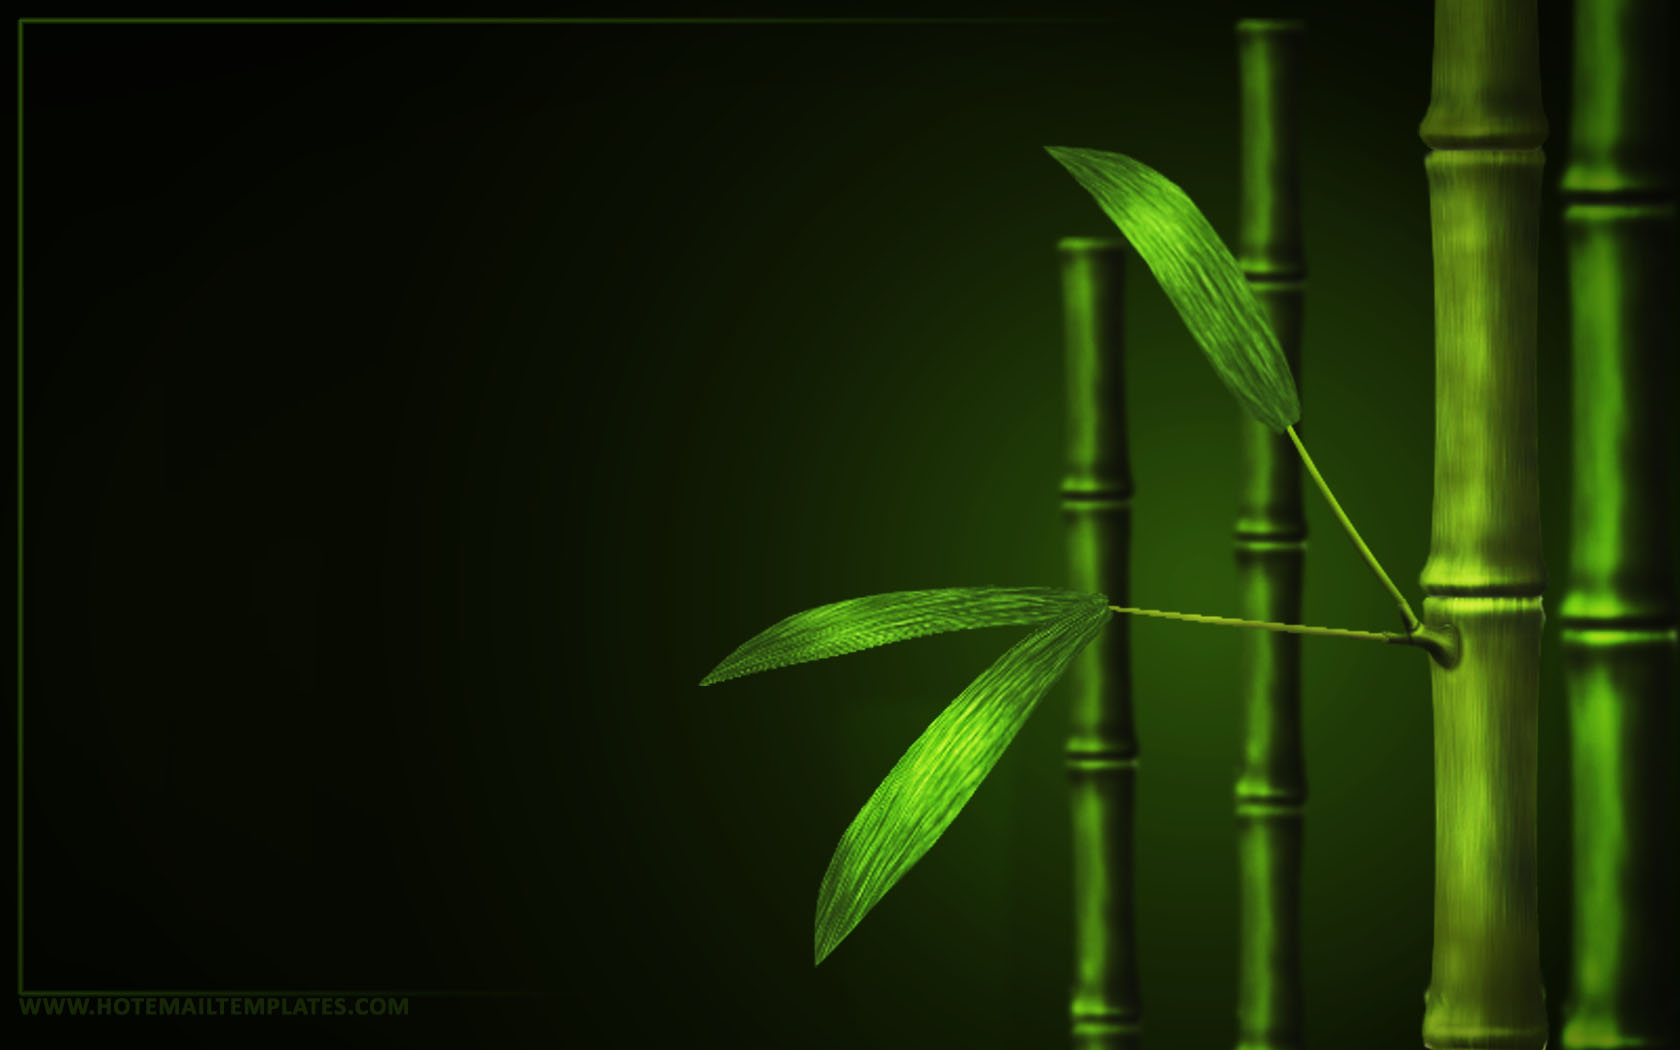 green bamboo wallpaper | Green Nature Forest Bamboo 496 Wallpapers Hd - ColourUnity.com